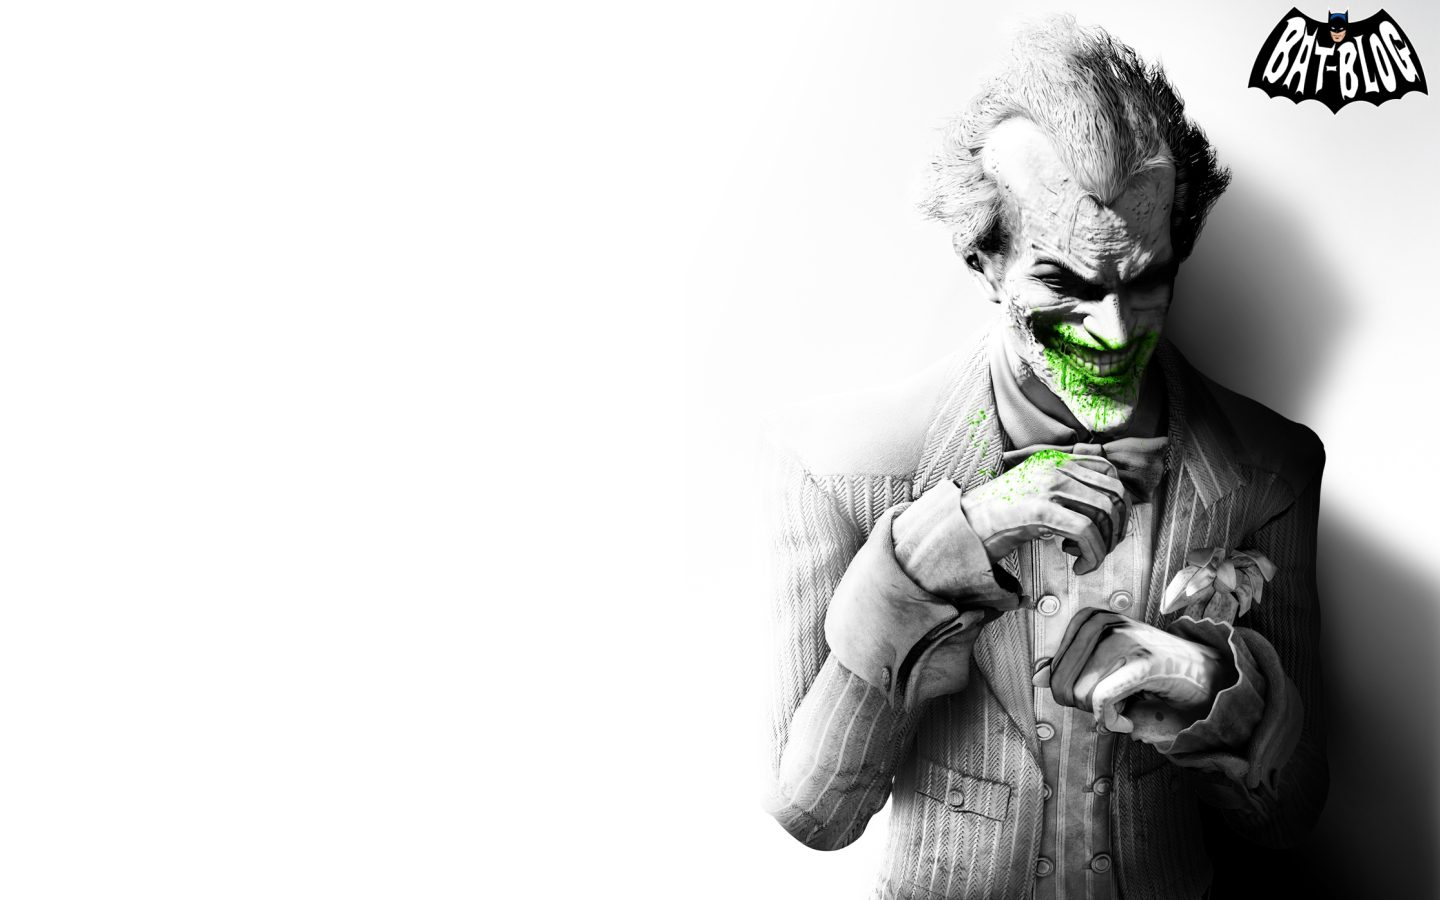 BATMAN TOYS and COLLECTIBLES BATMAN ARKHAM CITY   WALLPAPER 1440x900